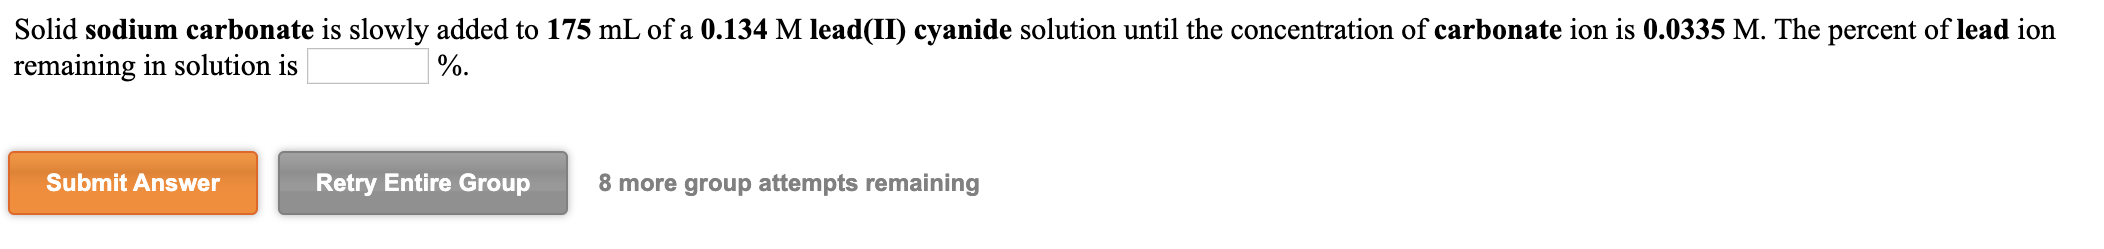 Solid sodium carbonate is slowly added to 175 mL of a 0.134 M lead(II) cyanide solution until the concentration of carbonate